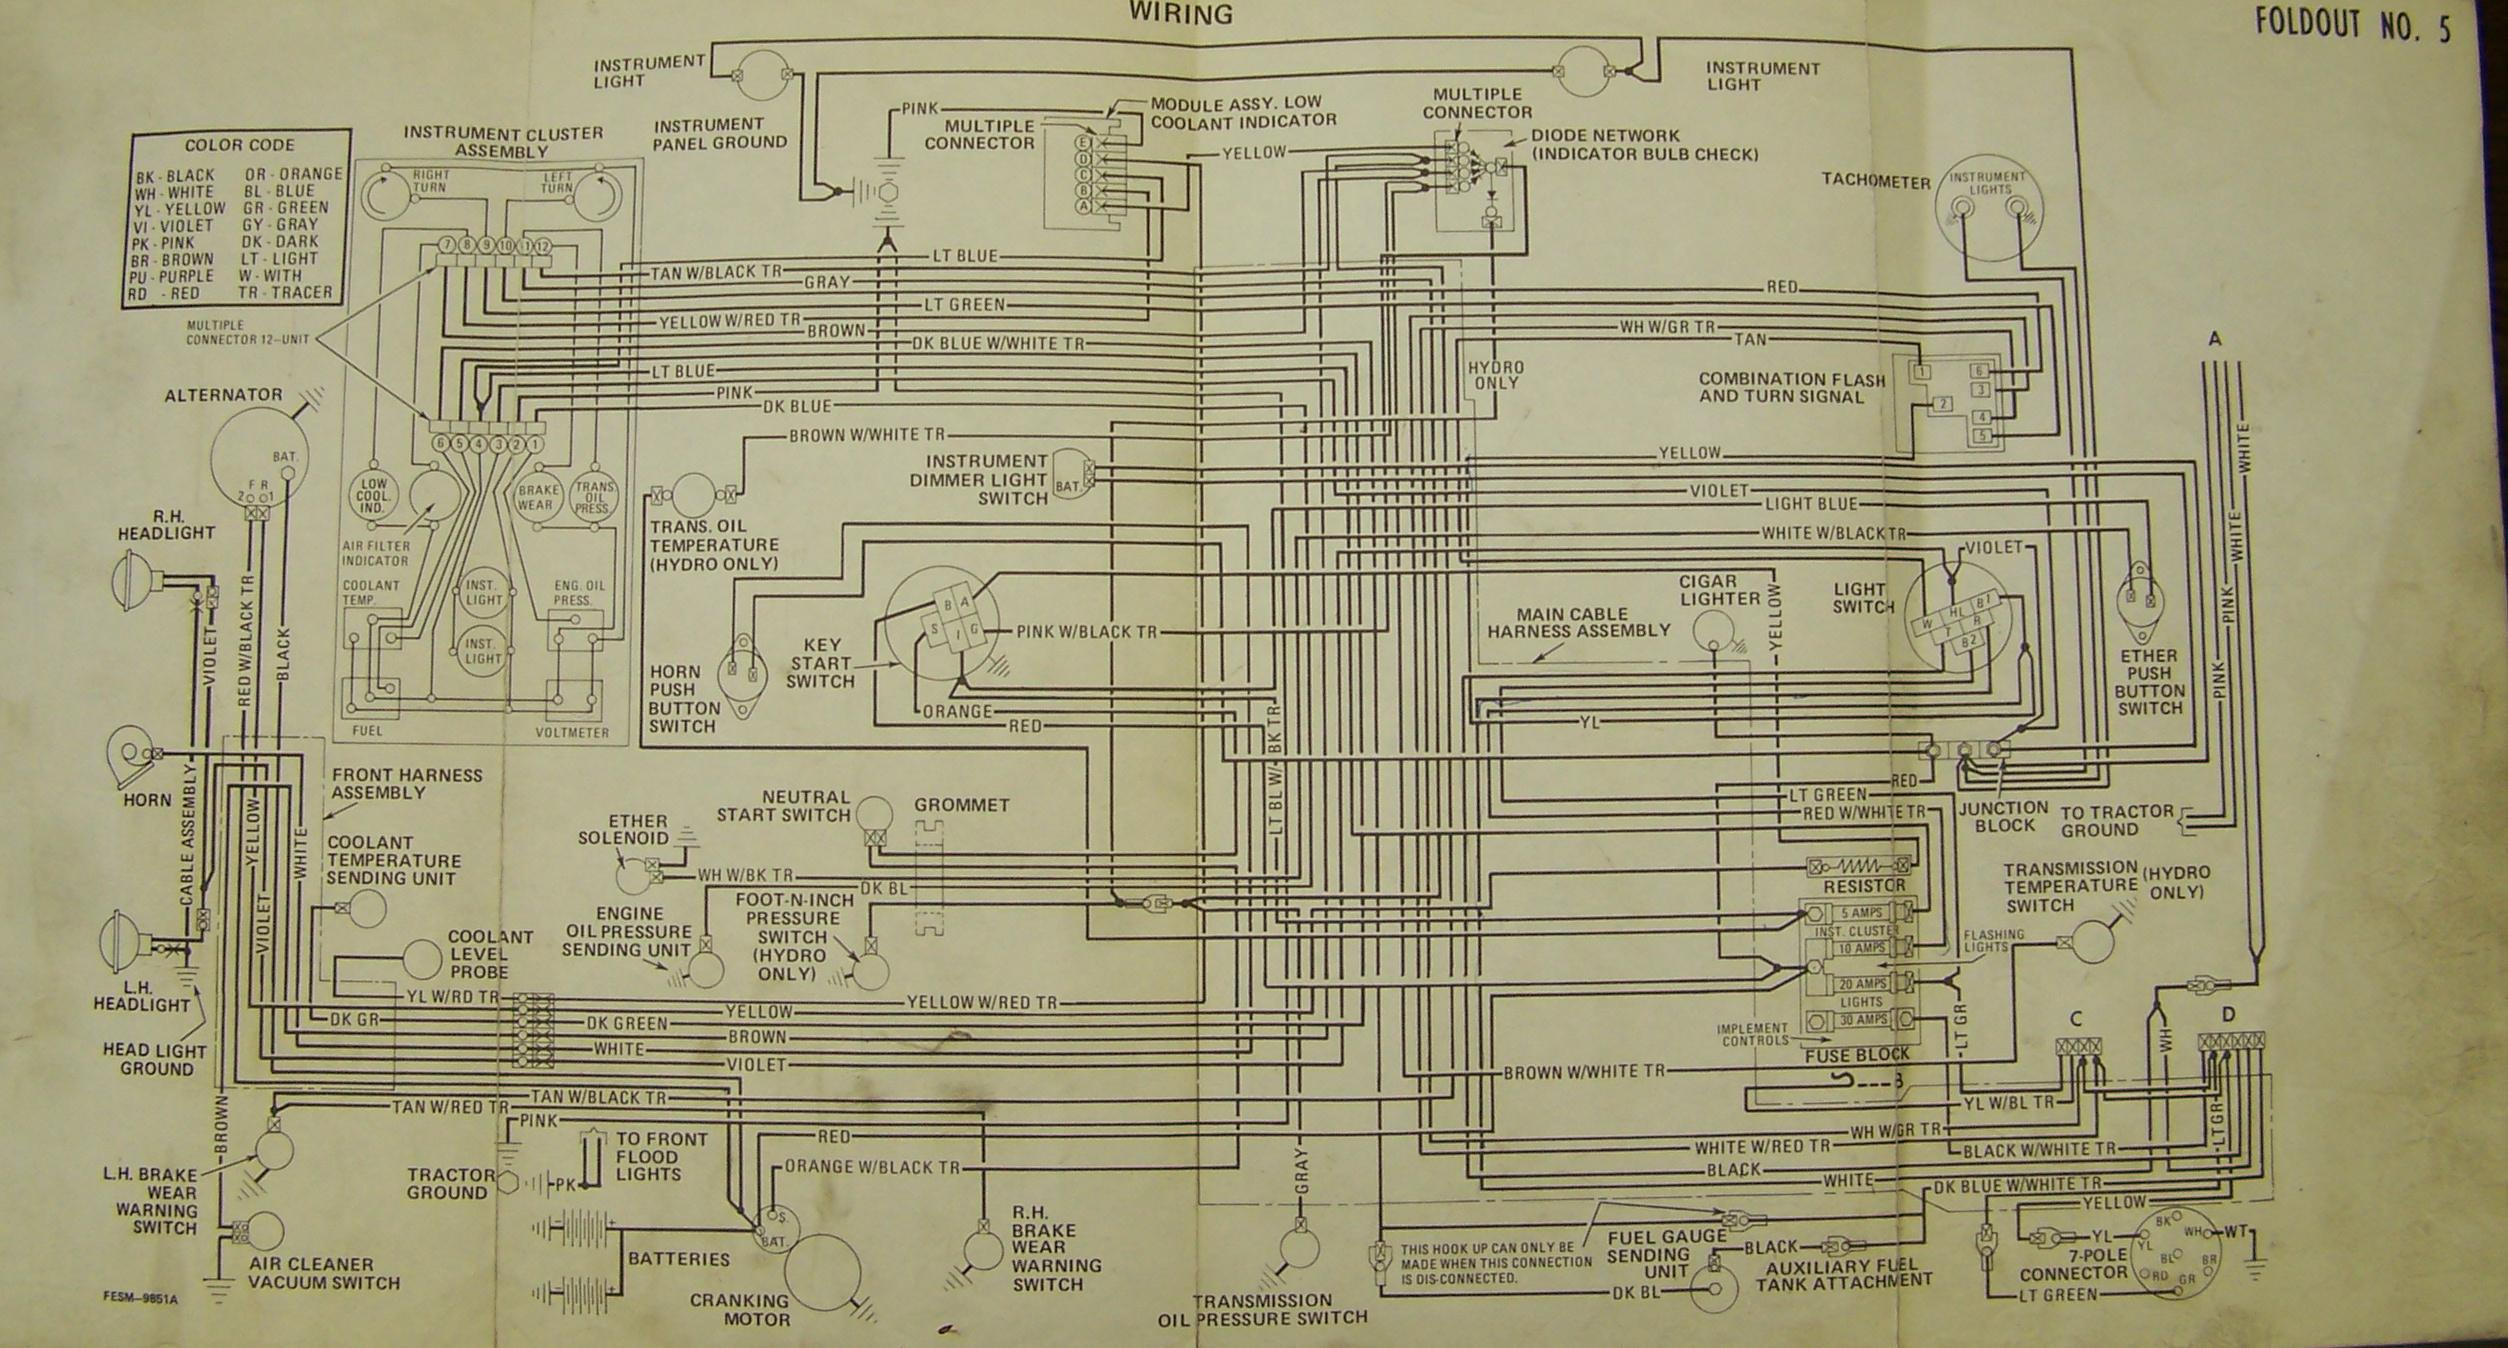 86series5 international motor diagrams ge electric motor wiring diagram 856 international wiring harness at readyjetset.co